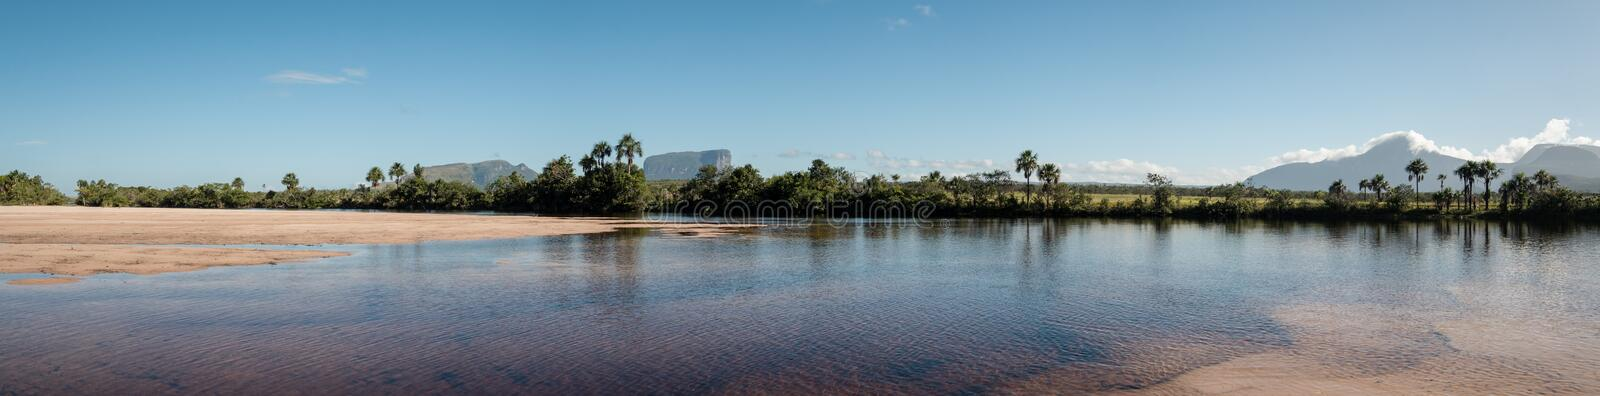 Panoramic view over Ucaima, Canaima, Venezuela stock image